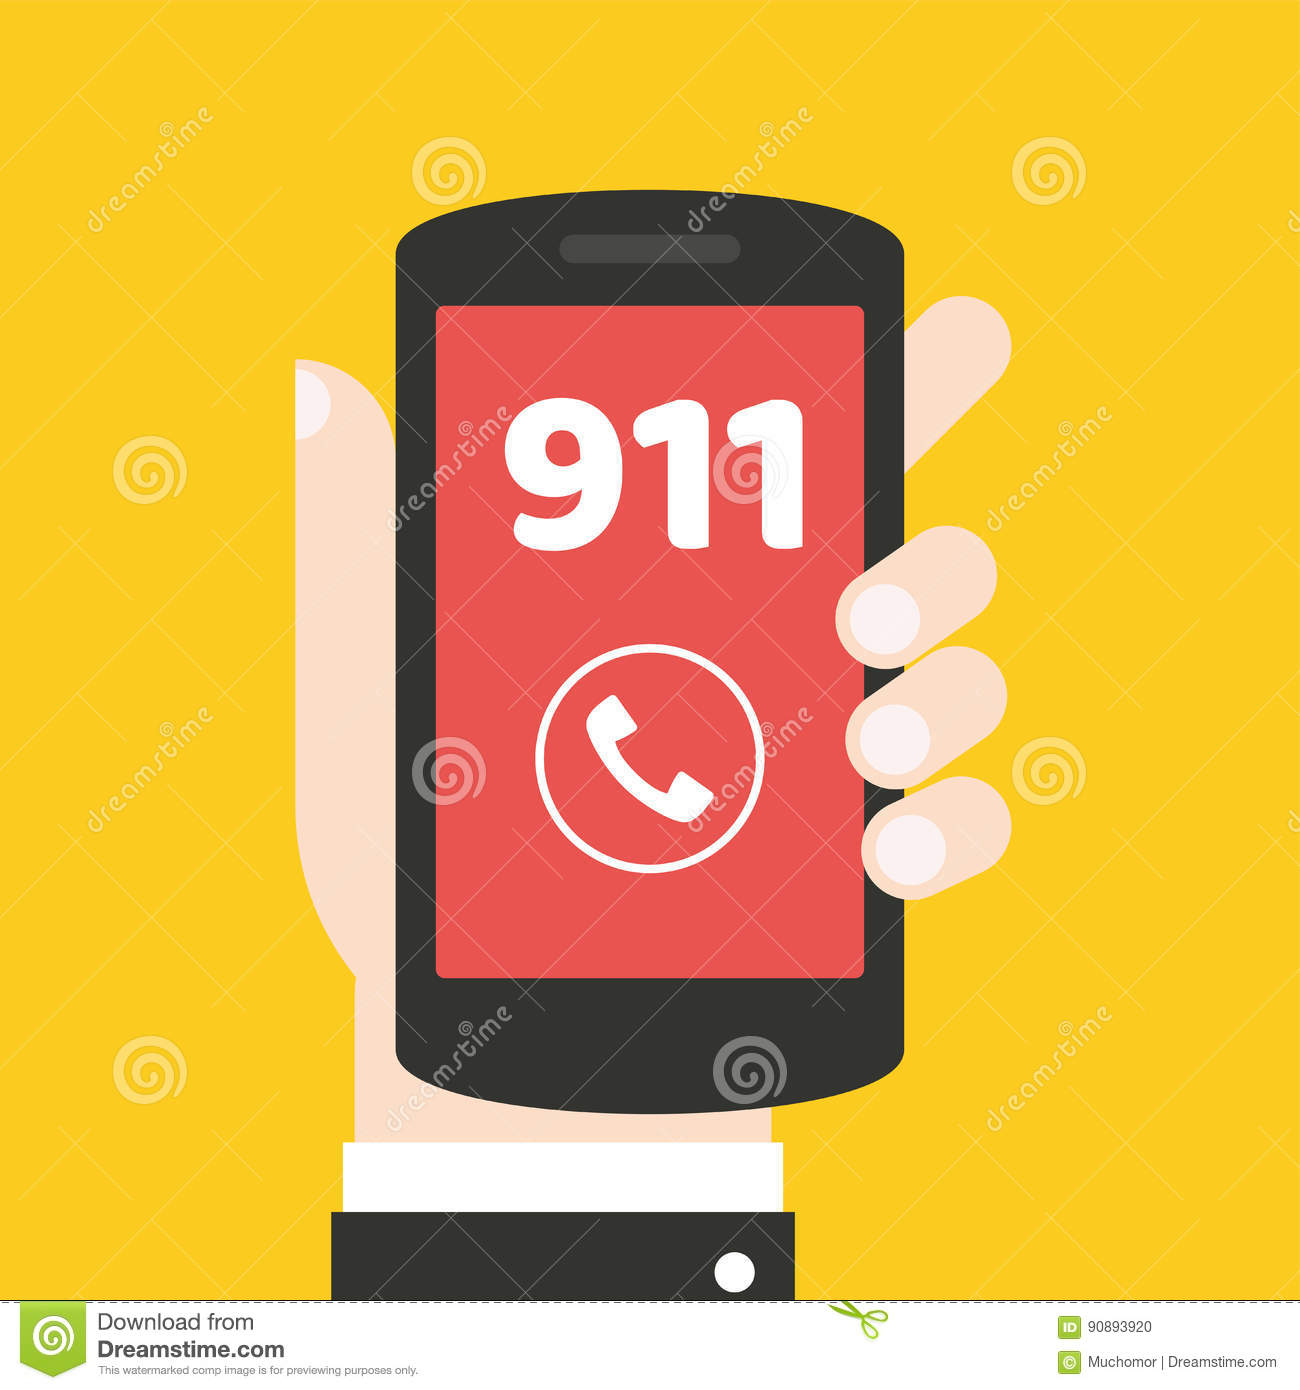 Emergency Call 911 Concept Hand Holding Mobile Phone